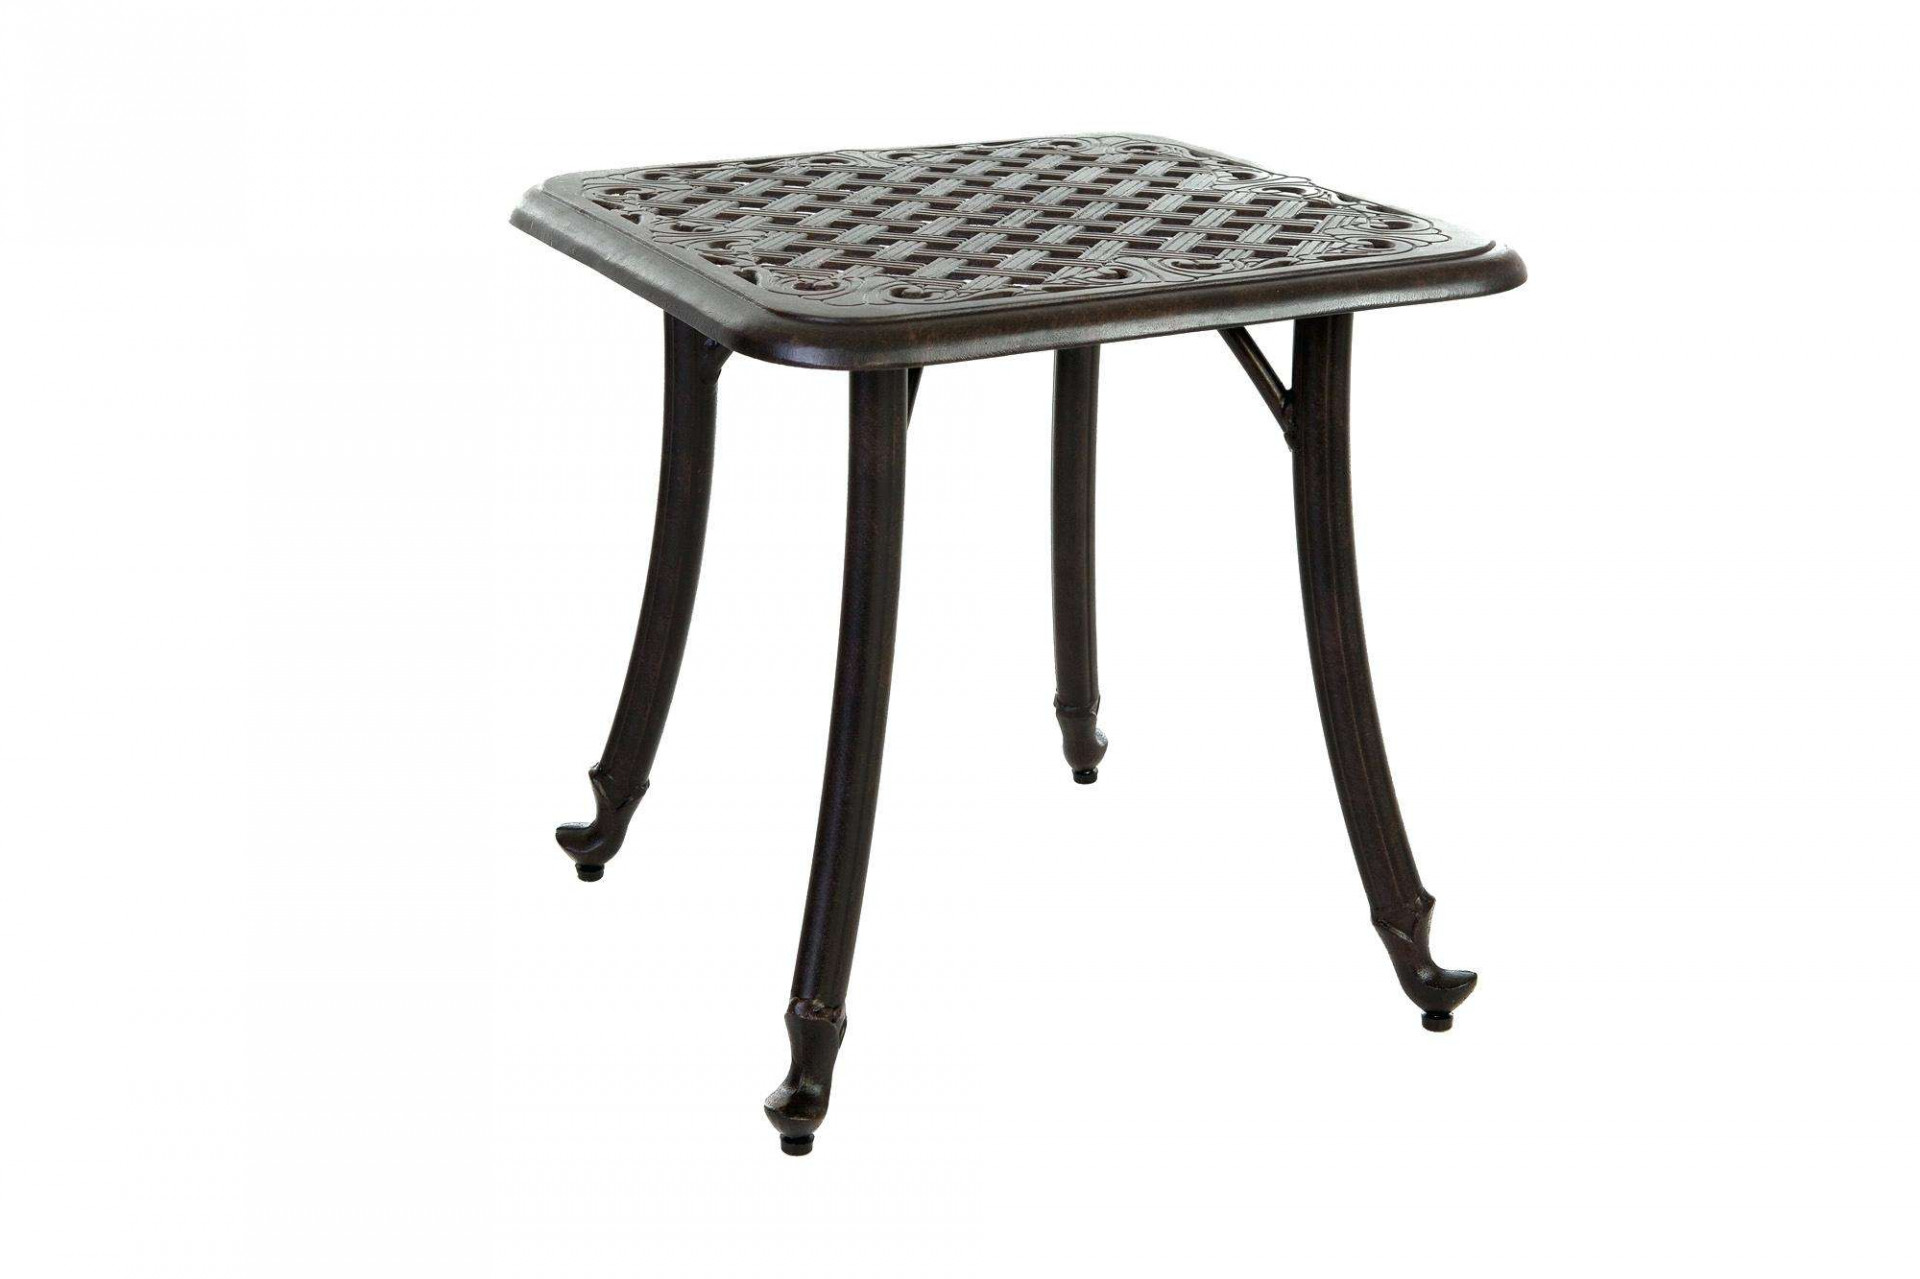 classy small tall round table coffee tables elegant black and side inspiration outdoor rowan bathroom furniture sets ikea lack uttermost art pier one off coupon code very long